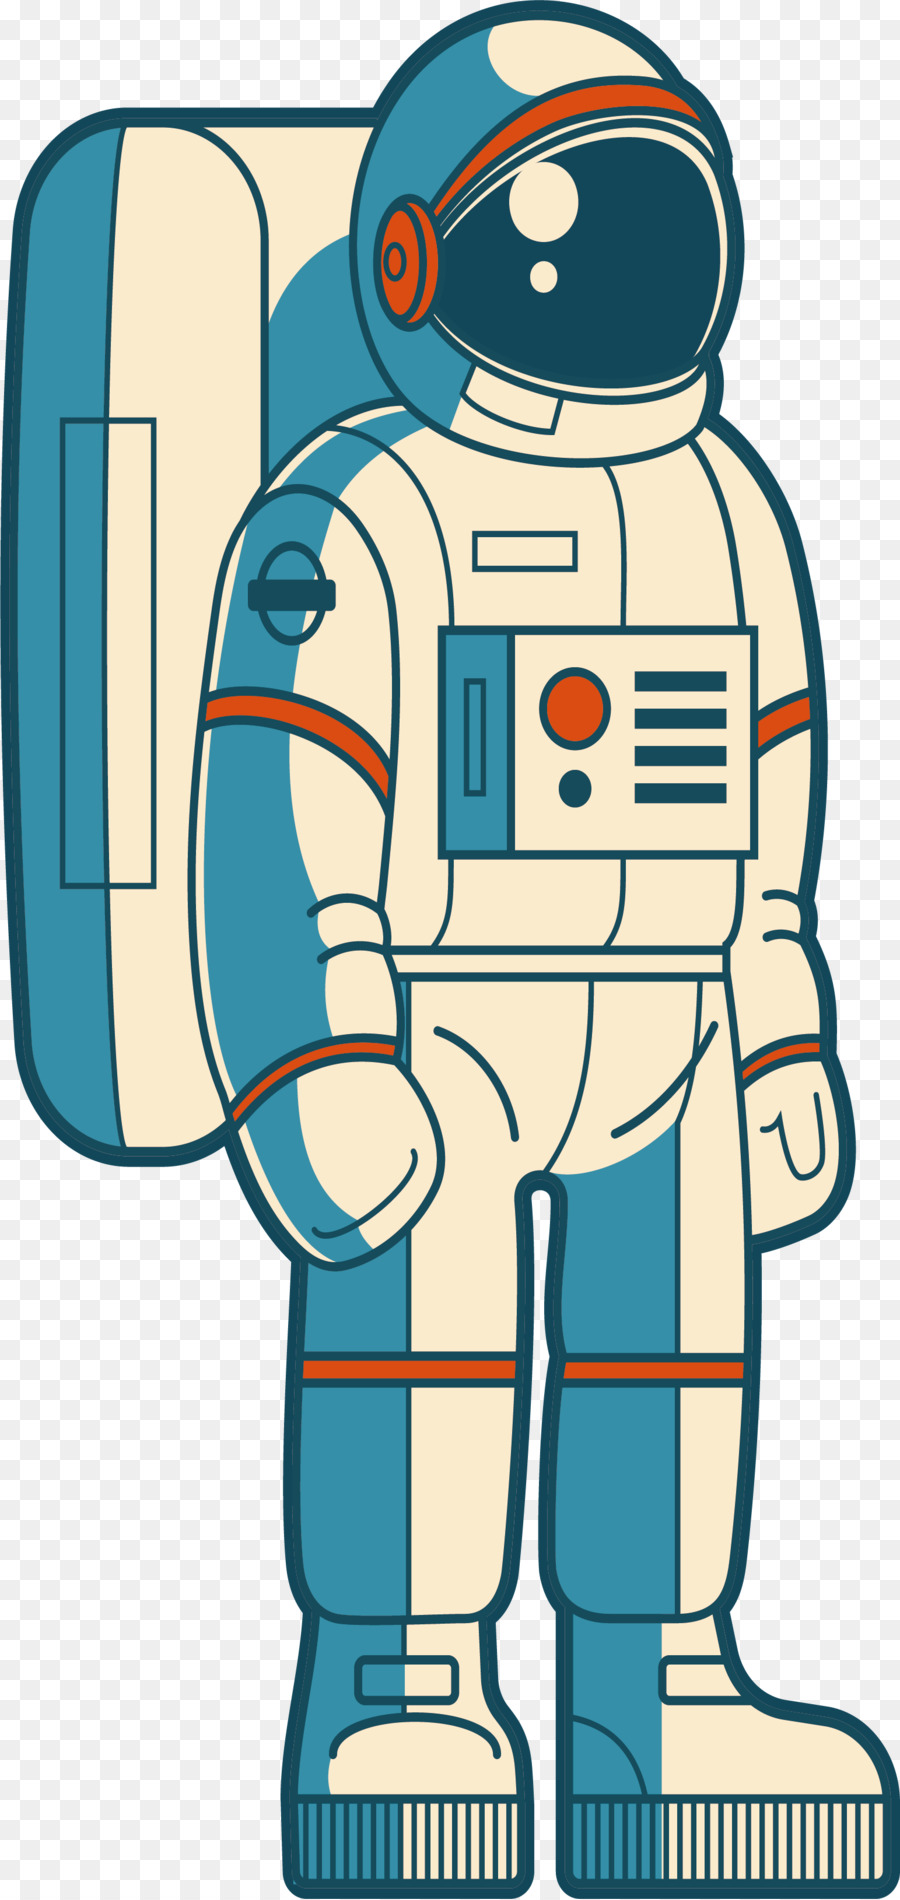 Outer space clip art. Astronaut clipart tool